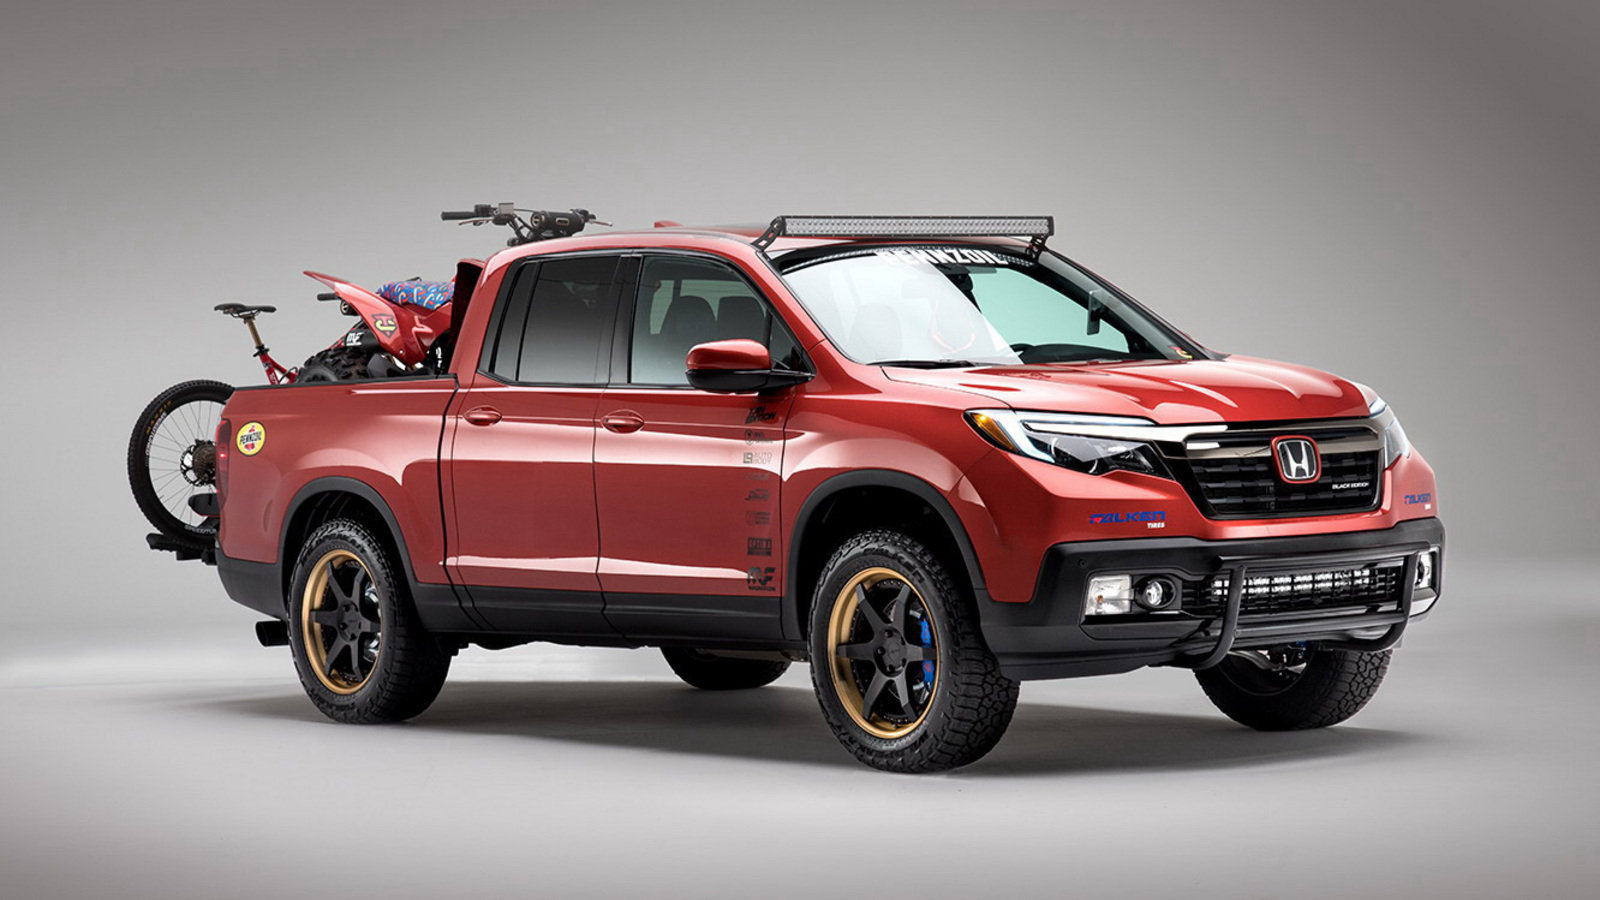 2016 honda ridgeline tjin edition review top speed. Black Bedroom Furniture Sets. Home Design Ideas